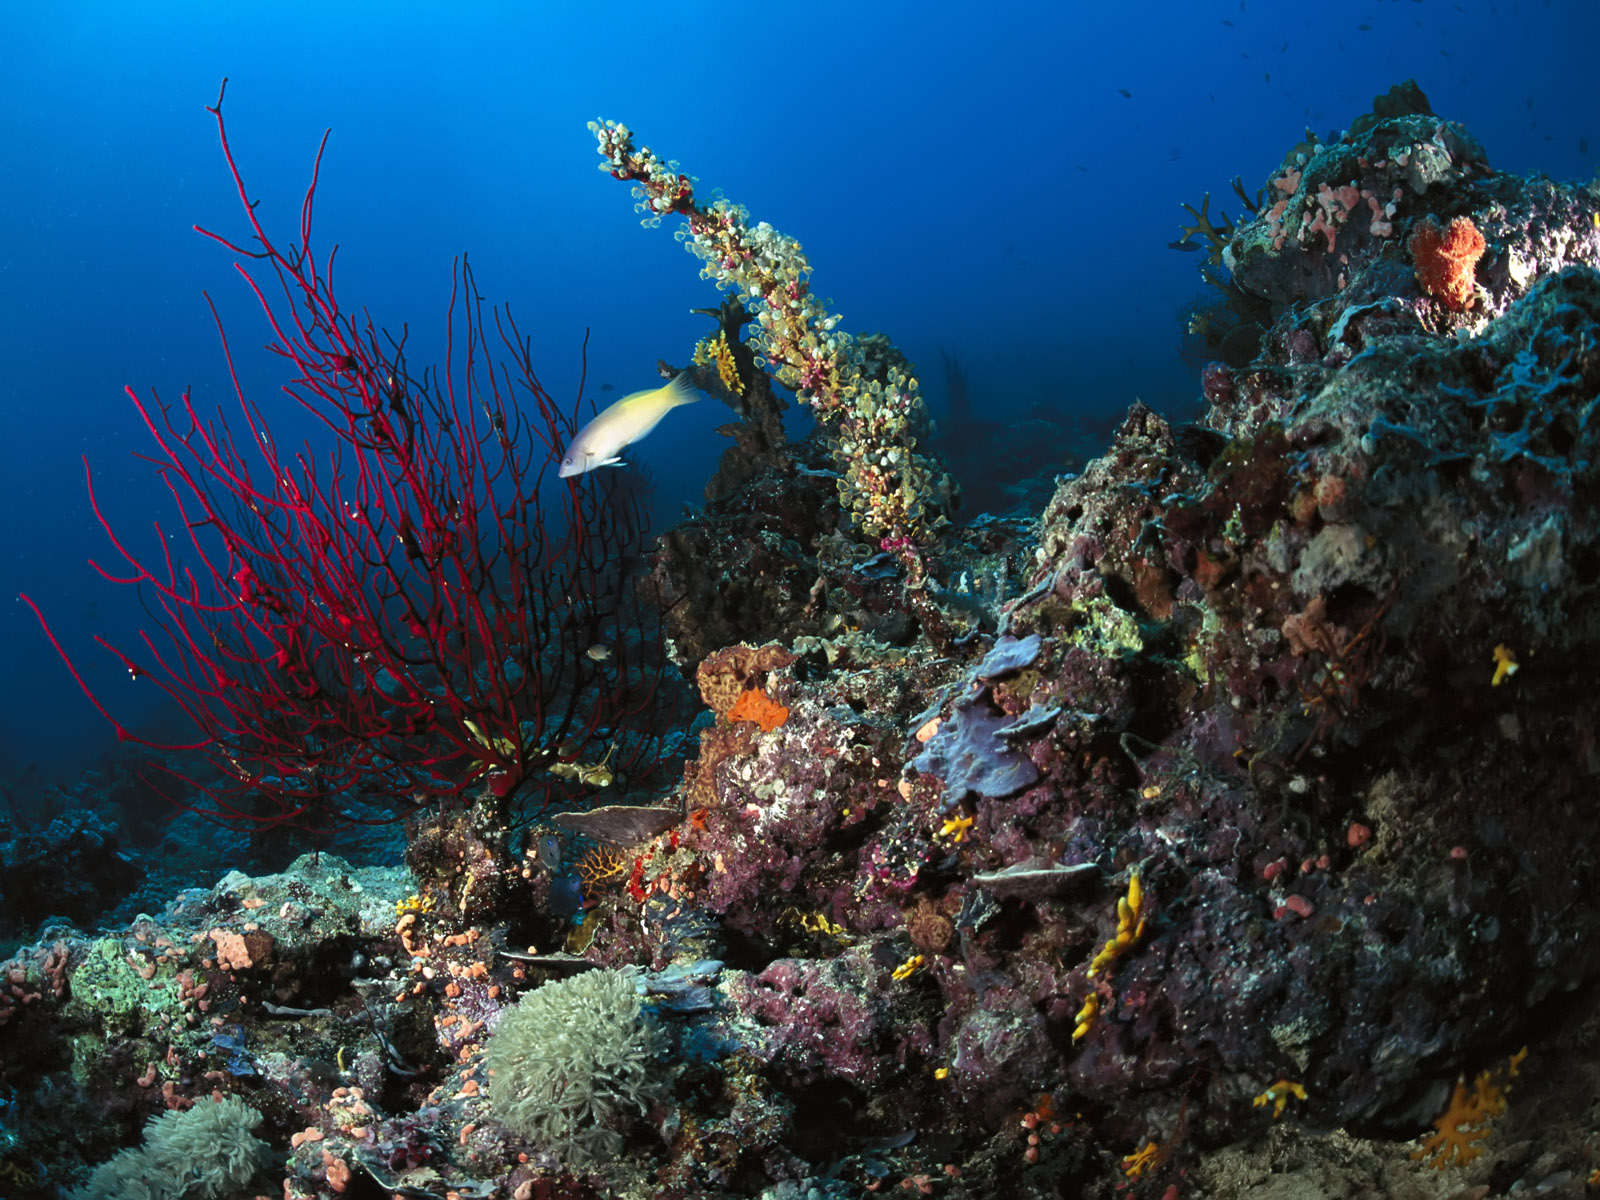 Underwater sea fishes hd wallpapers npicx we share